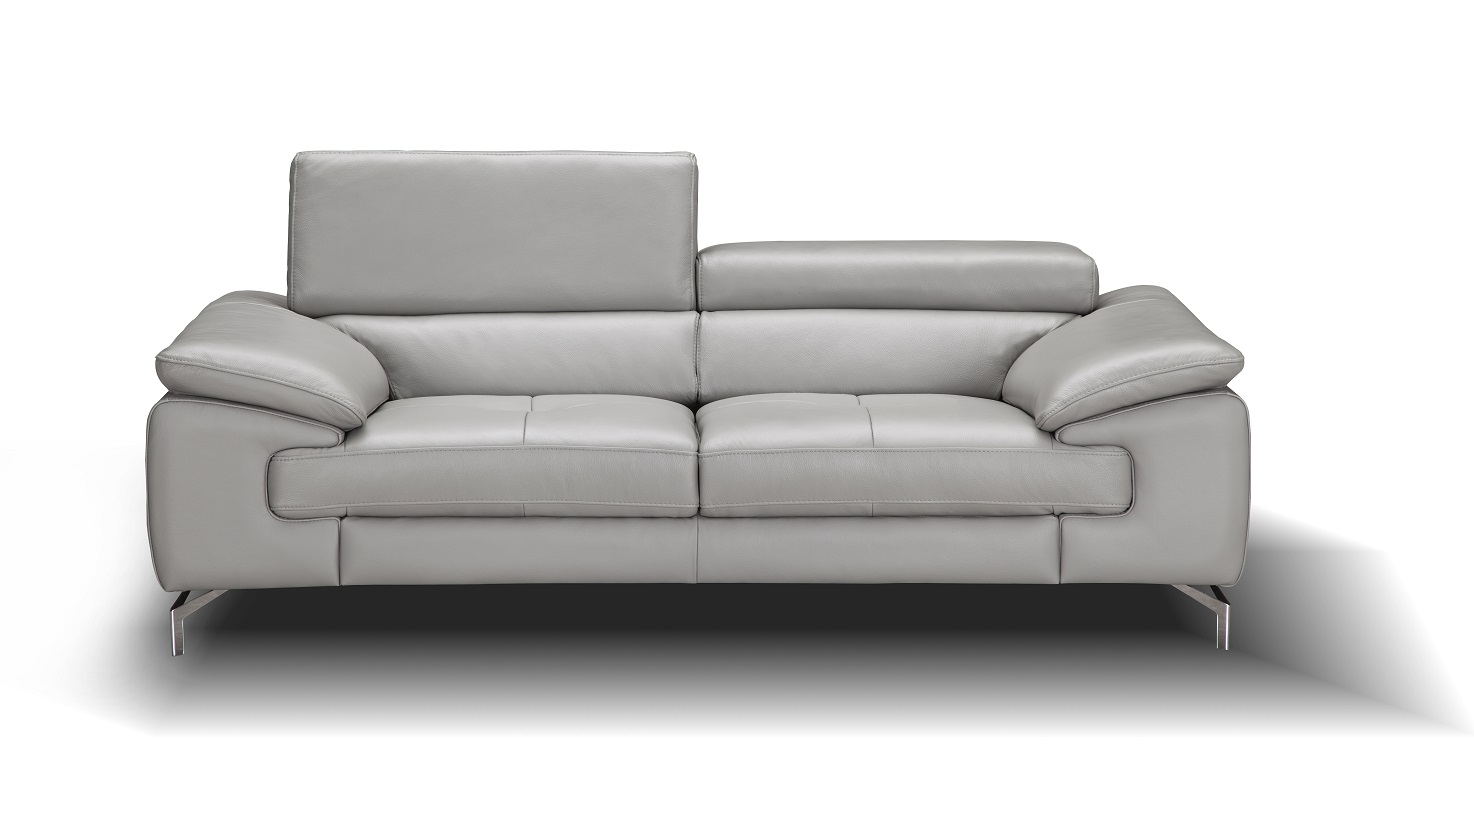 j m paquet sofa bergamo grey sectional leather trendy and loveseat in premium detroit